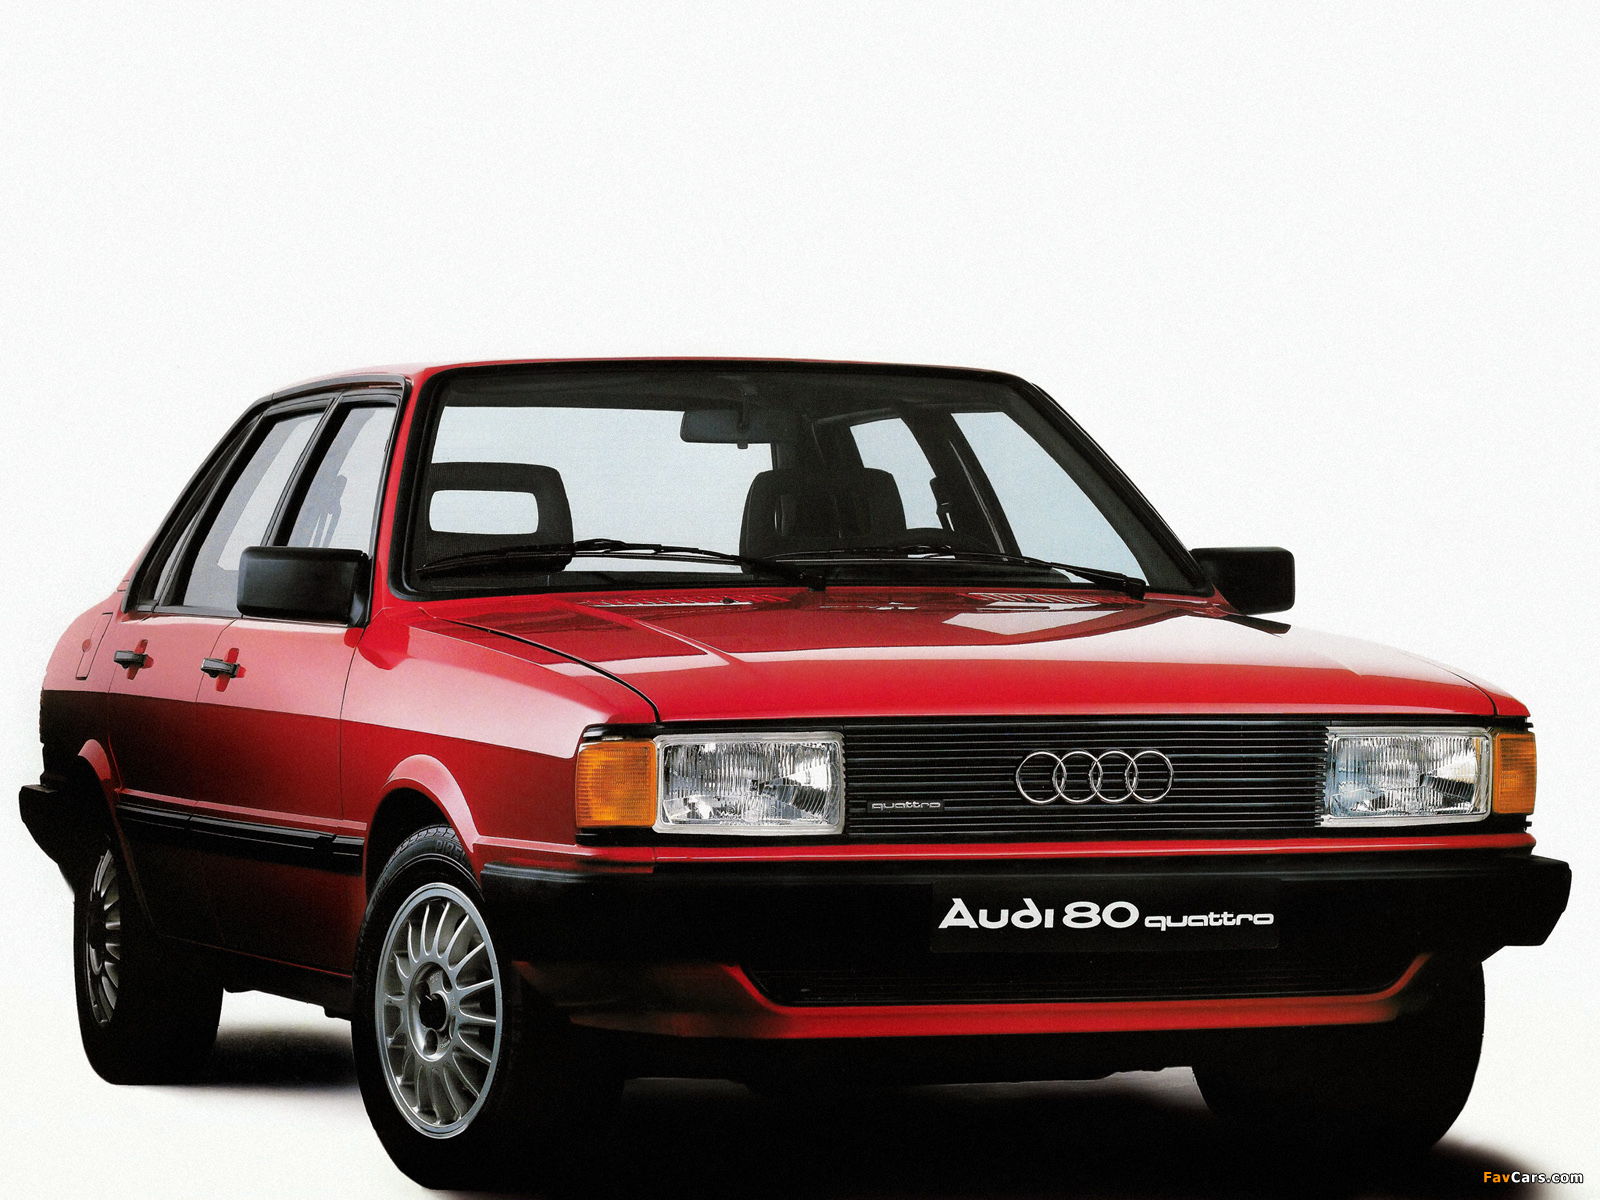 audi 80 quattro b2 1982 1984 photos 1600x1200. Black Bedroom Furniture Sets. Home Design Ideas